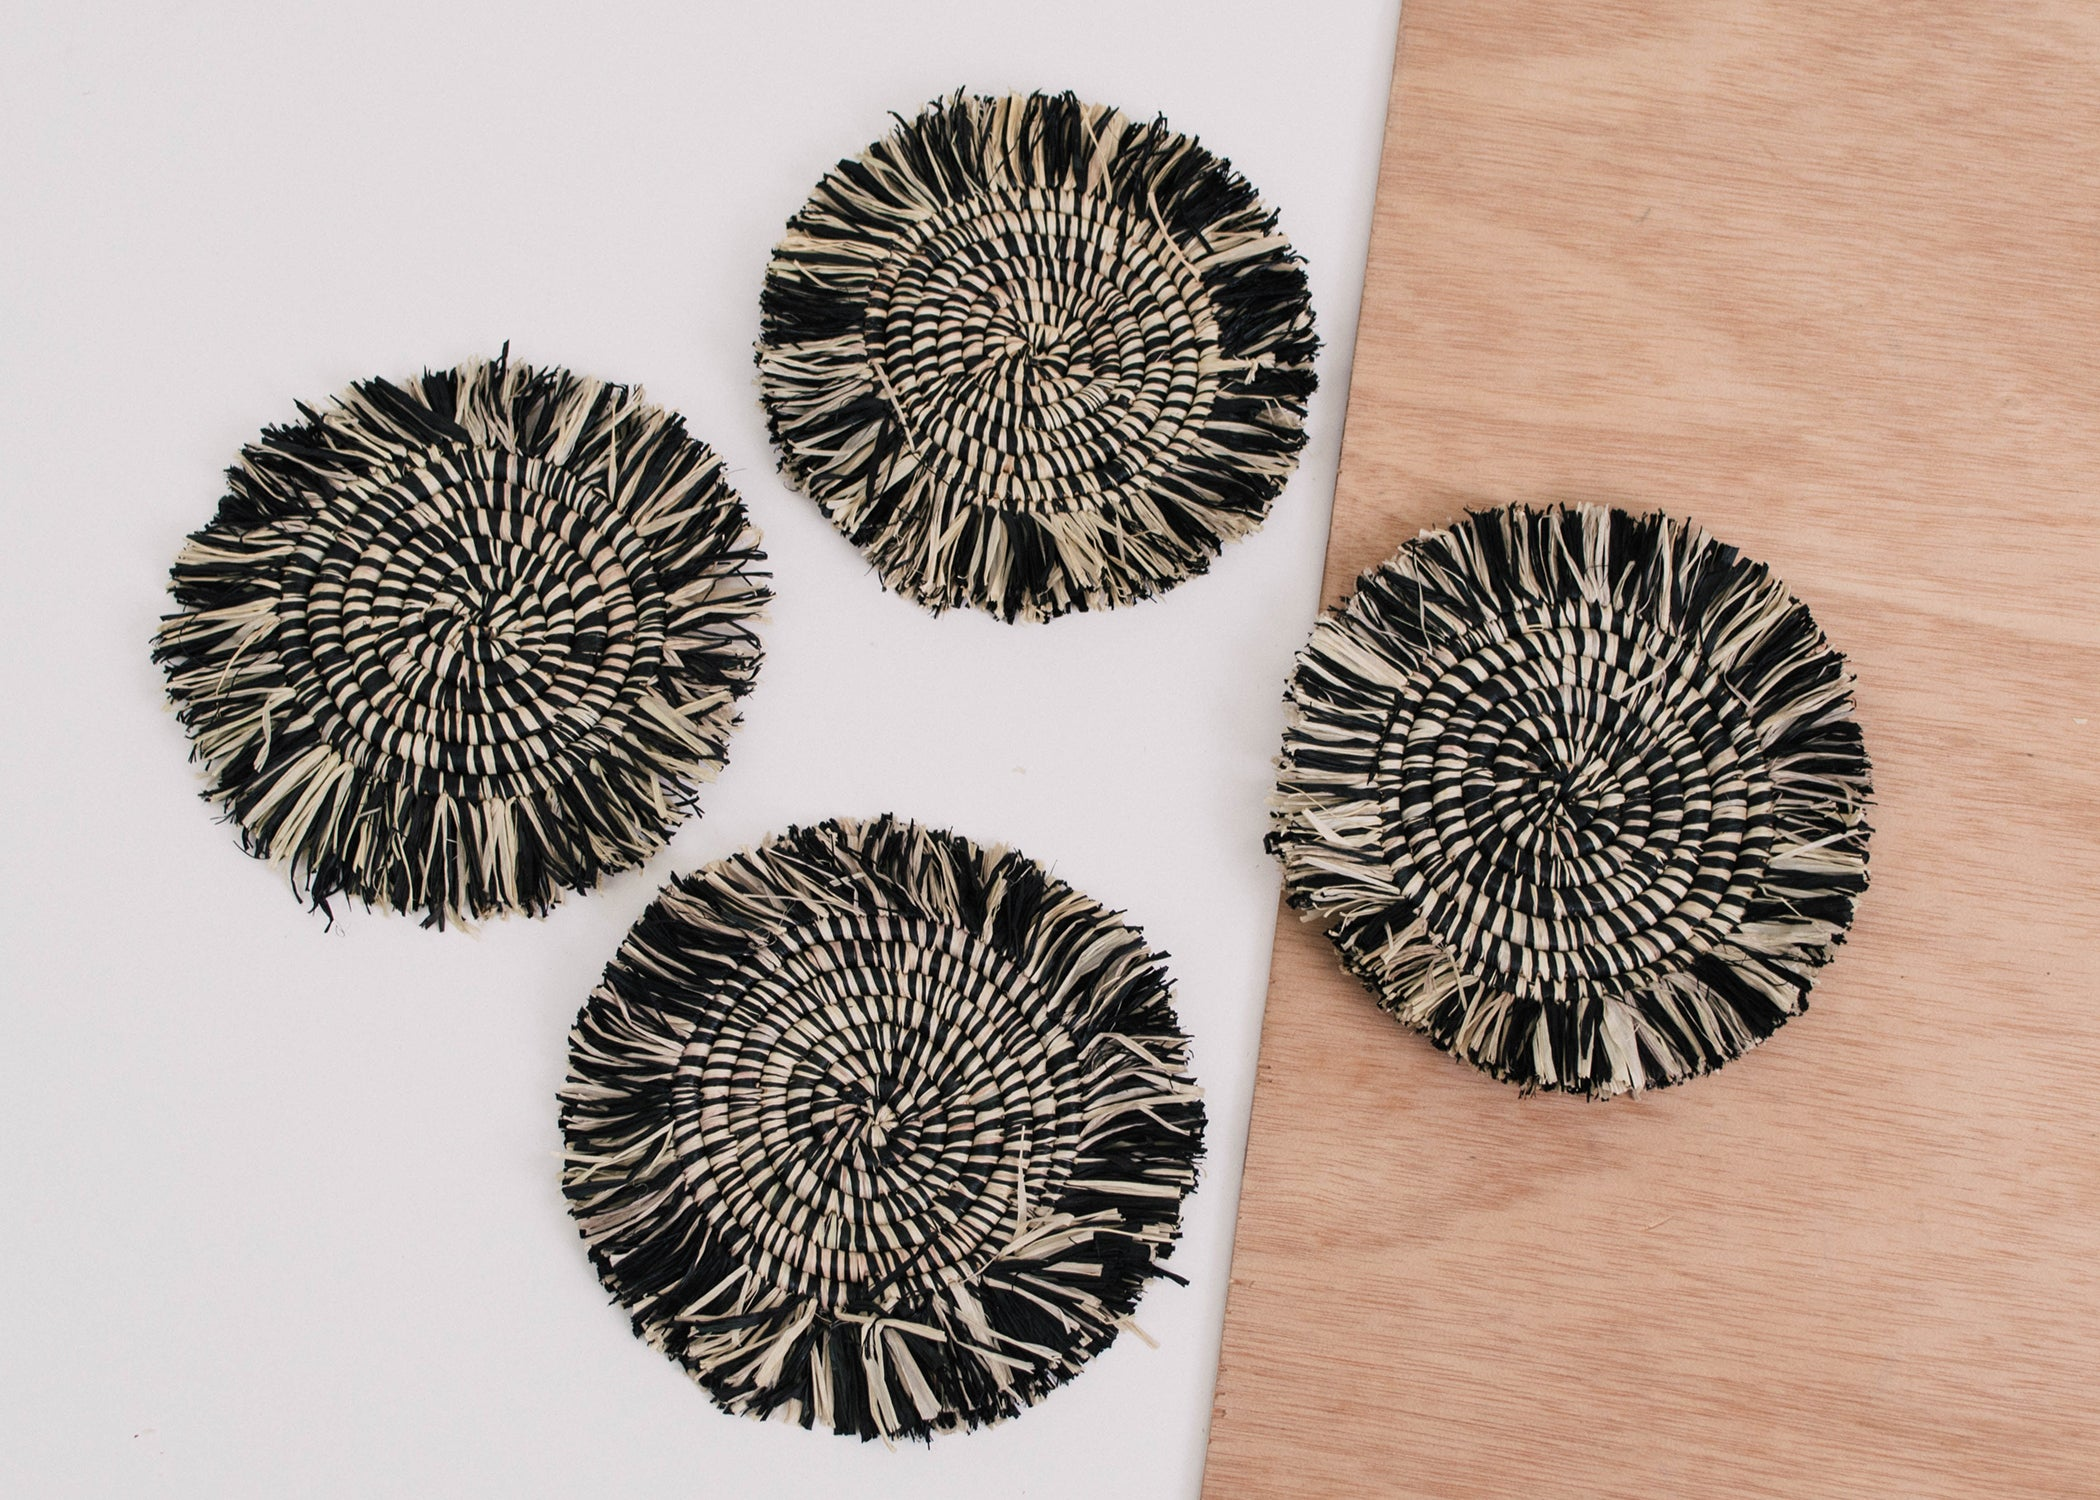 Fringed Black Coasters - Set of 4 - KAZI - Artisan made high quality home decor and wall art